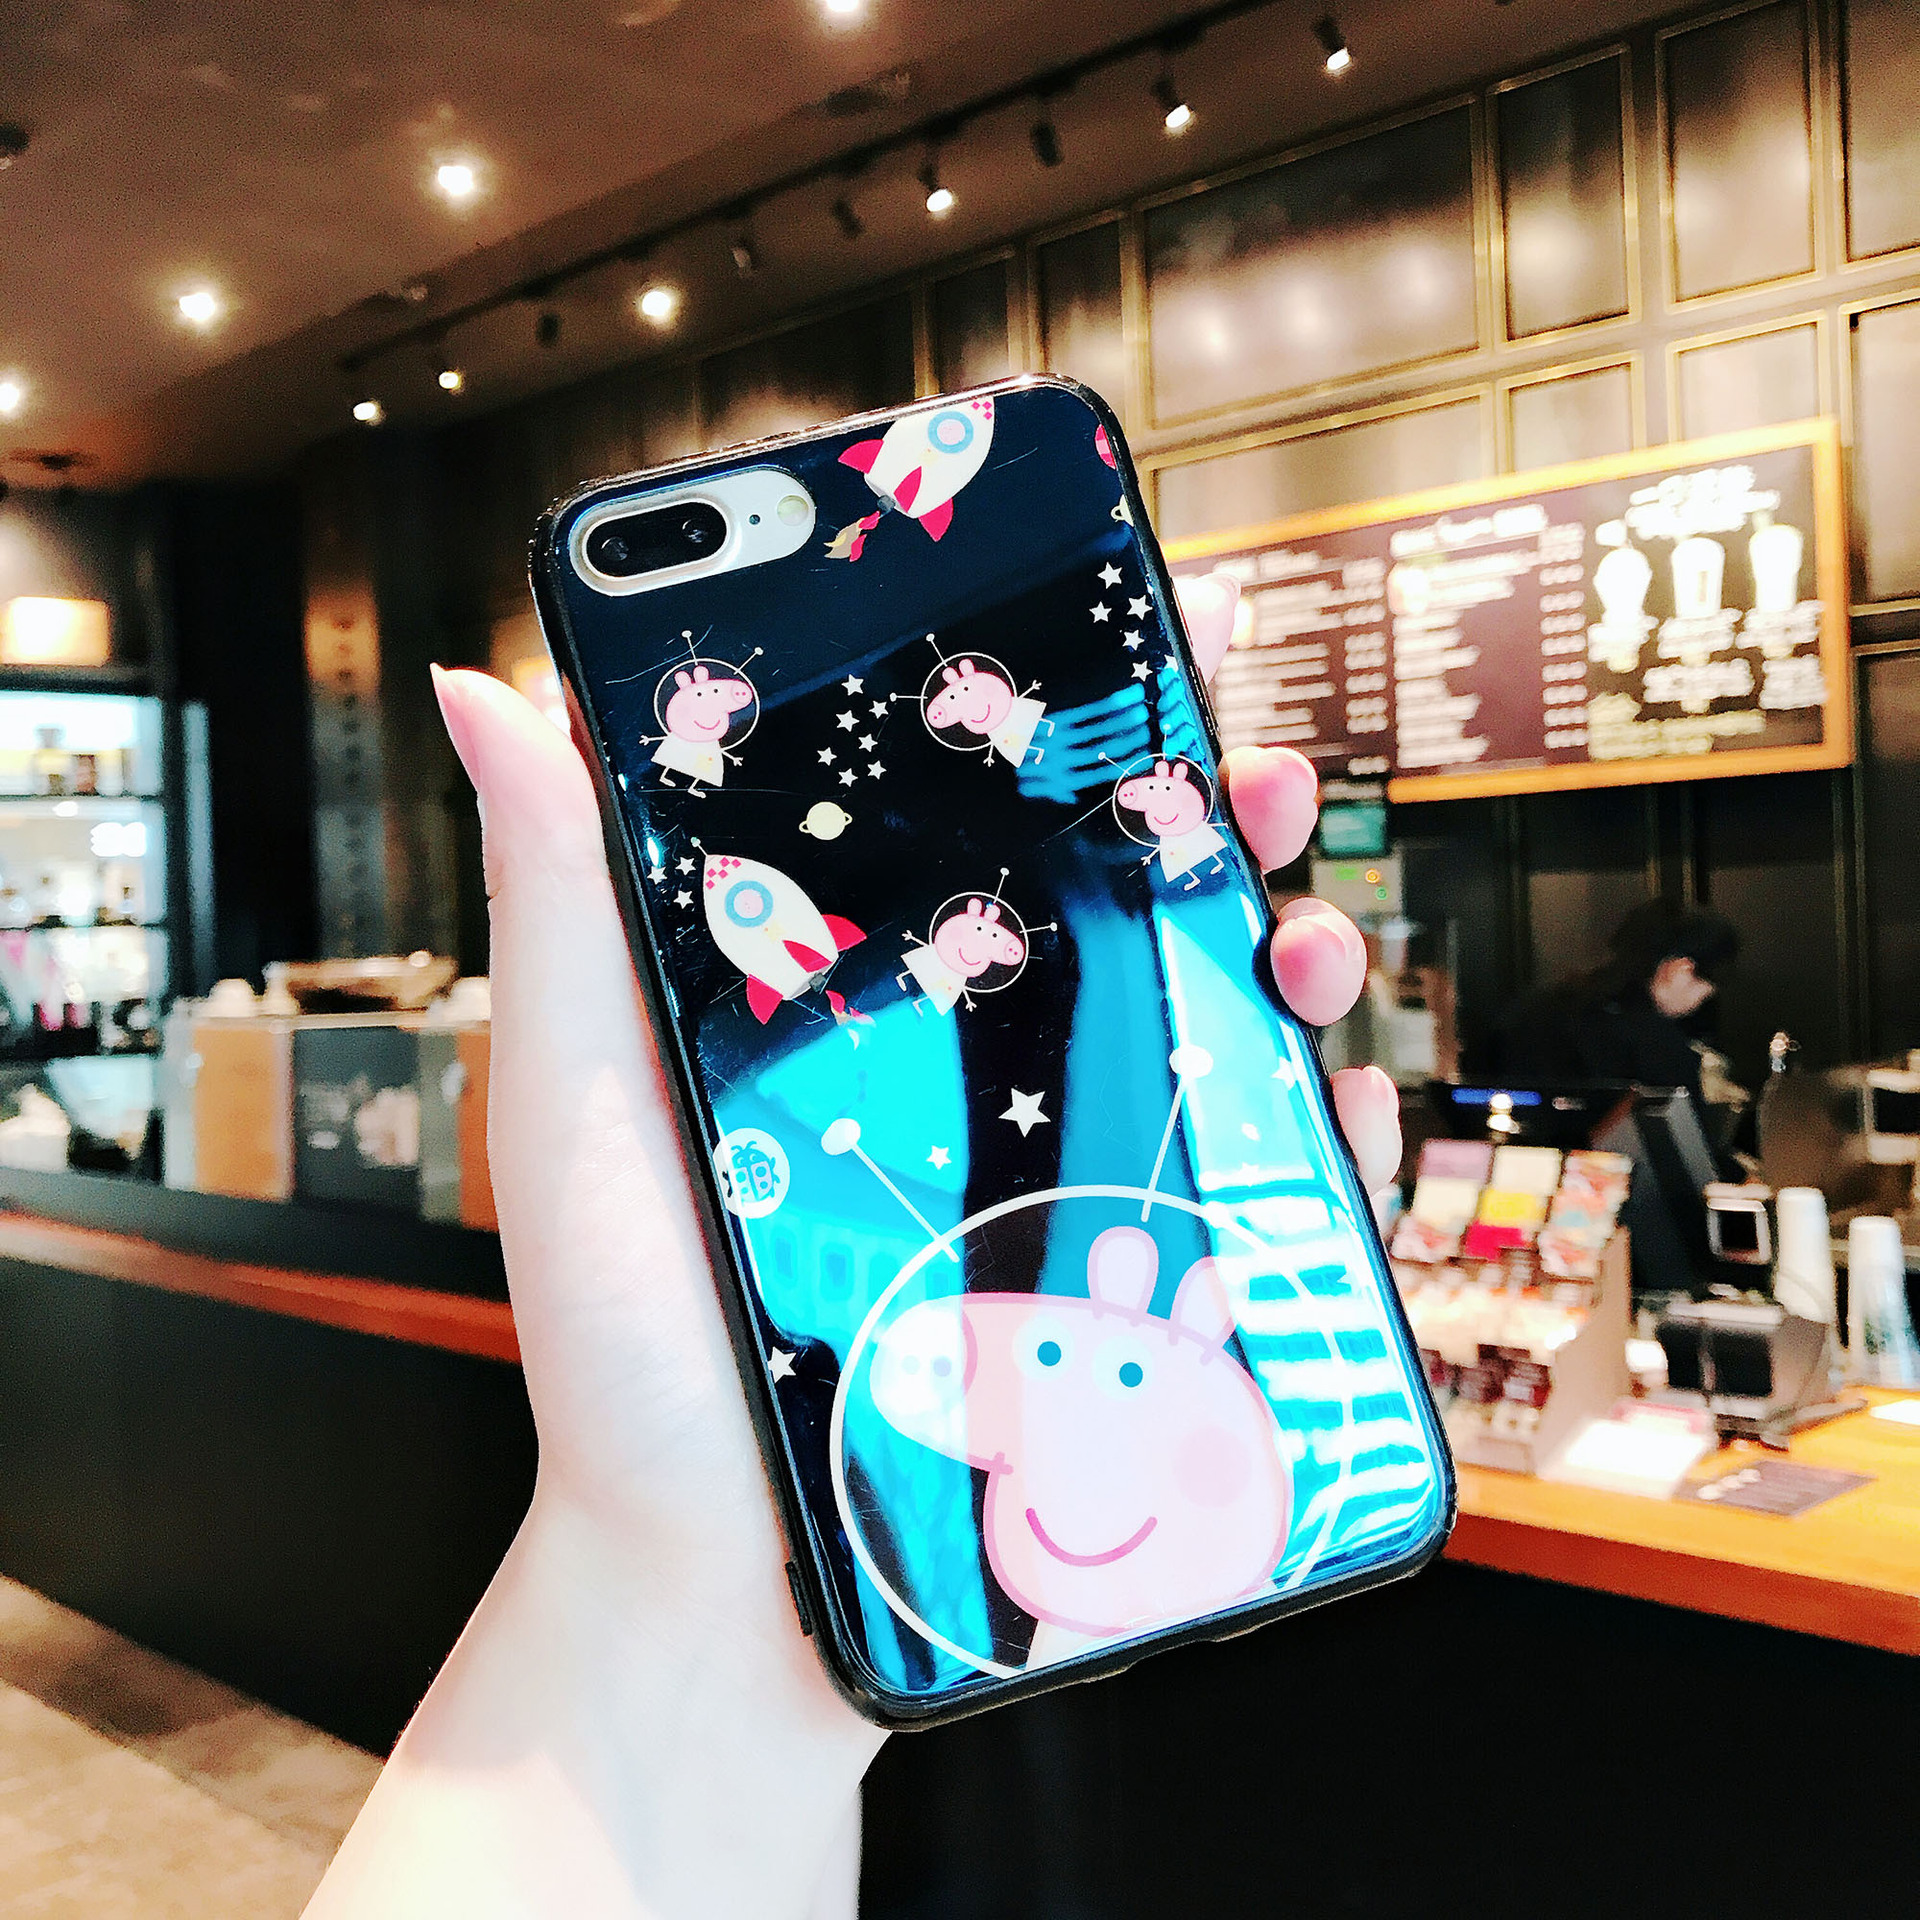 Fashion Design Phone Case Letter and Carton Print Protective Case for Iphone Premium Shockproof TPU Material Dirt-resistant Shock-Resistant